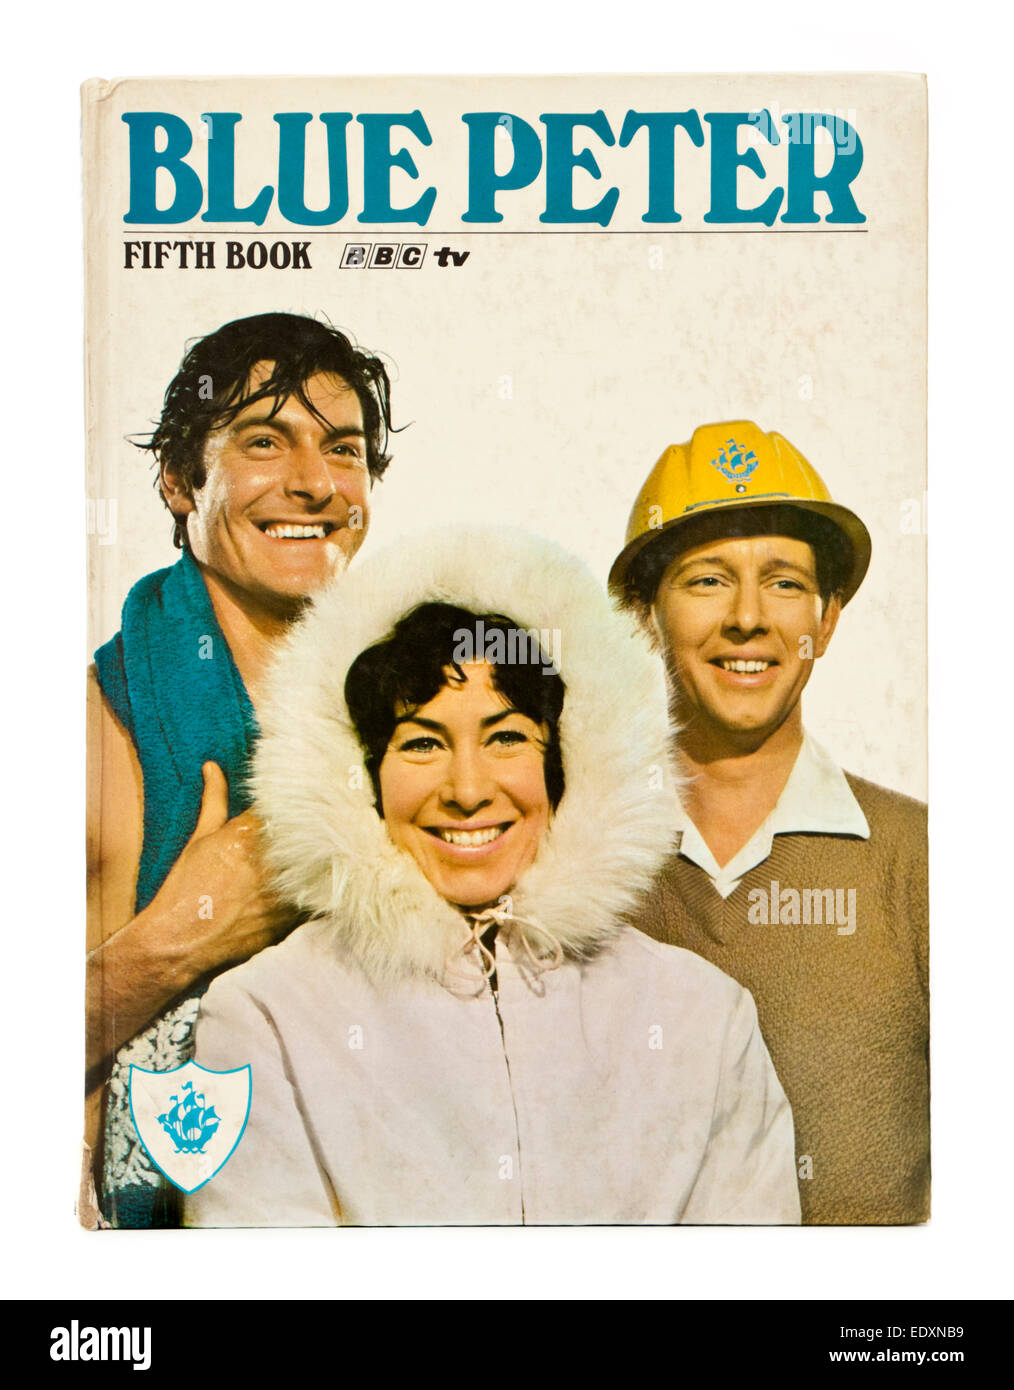 The fifth BBC 'Blue Peter' book from 1969. Blue Peter is a popular British BBC children's television - Stock Image